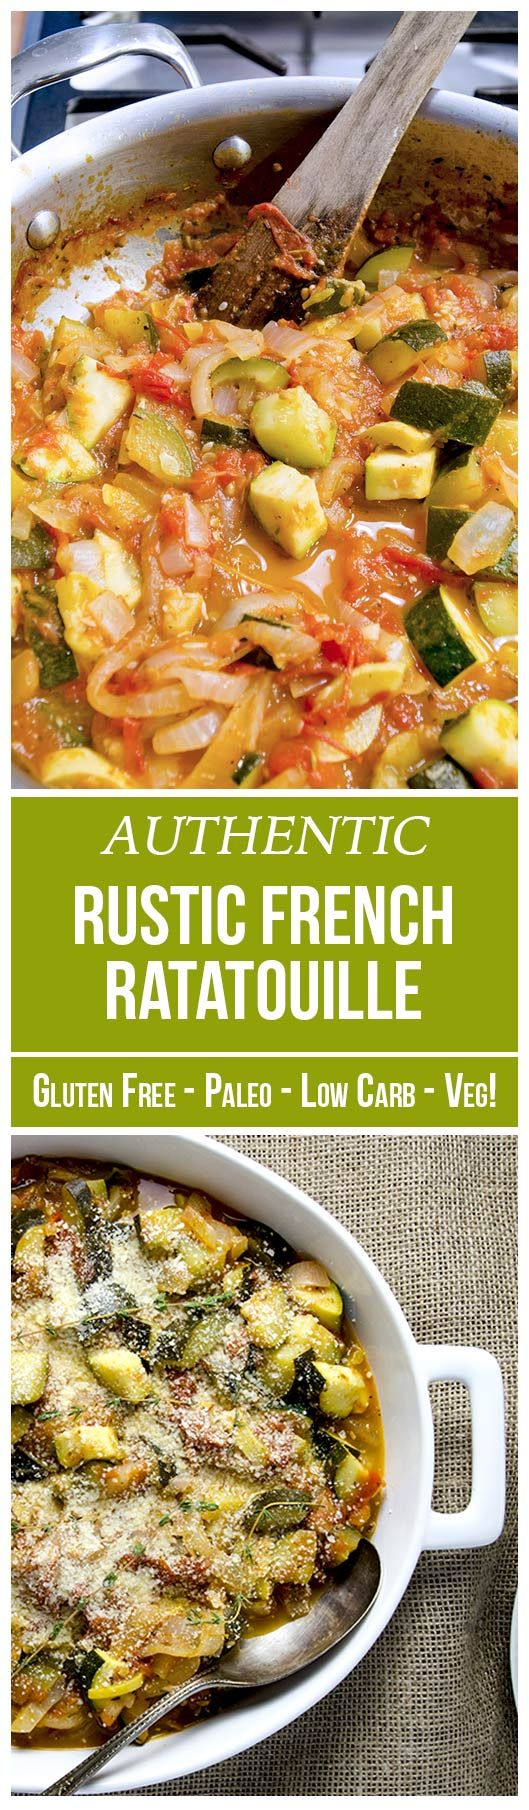 """If you liked the Pixar animated movie, you will fall in love with this provençal ratatouille recipe. It's French and it's classic. A healthy low-carb dish made of five fresh ingredients, herbs de Provence, and some spices. You'll be amazed by how little it takes to build so much flavor! Skip the parmesan and you have a delicious vegan recipe. Chef Gusteau from Ratatouille said: """"Anyone can cook, but only the fearless can be great!"""" So be fearless and start cooking this savory recipe!"""